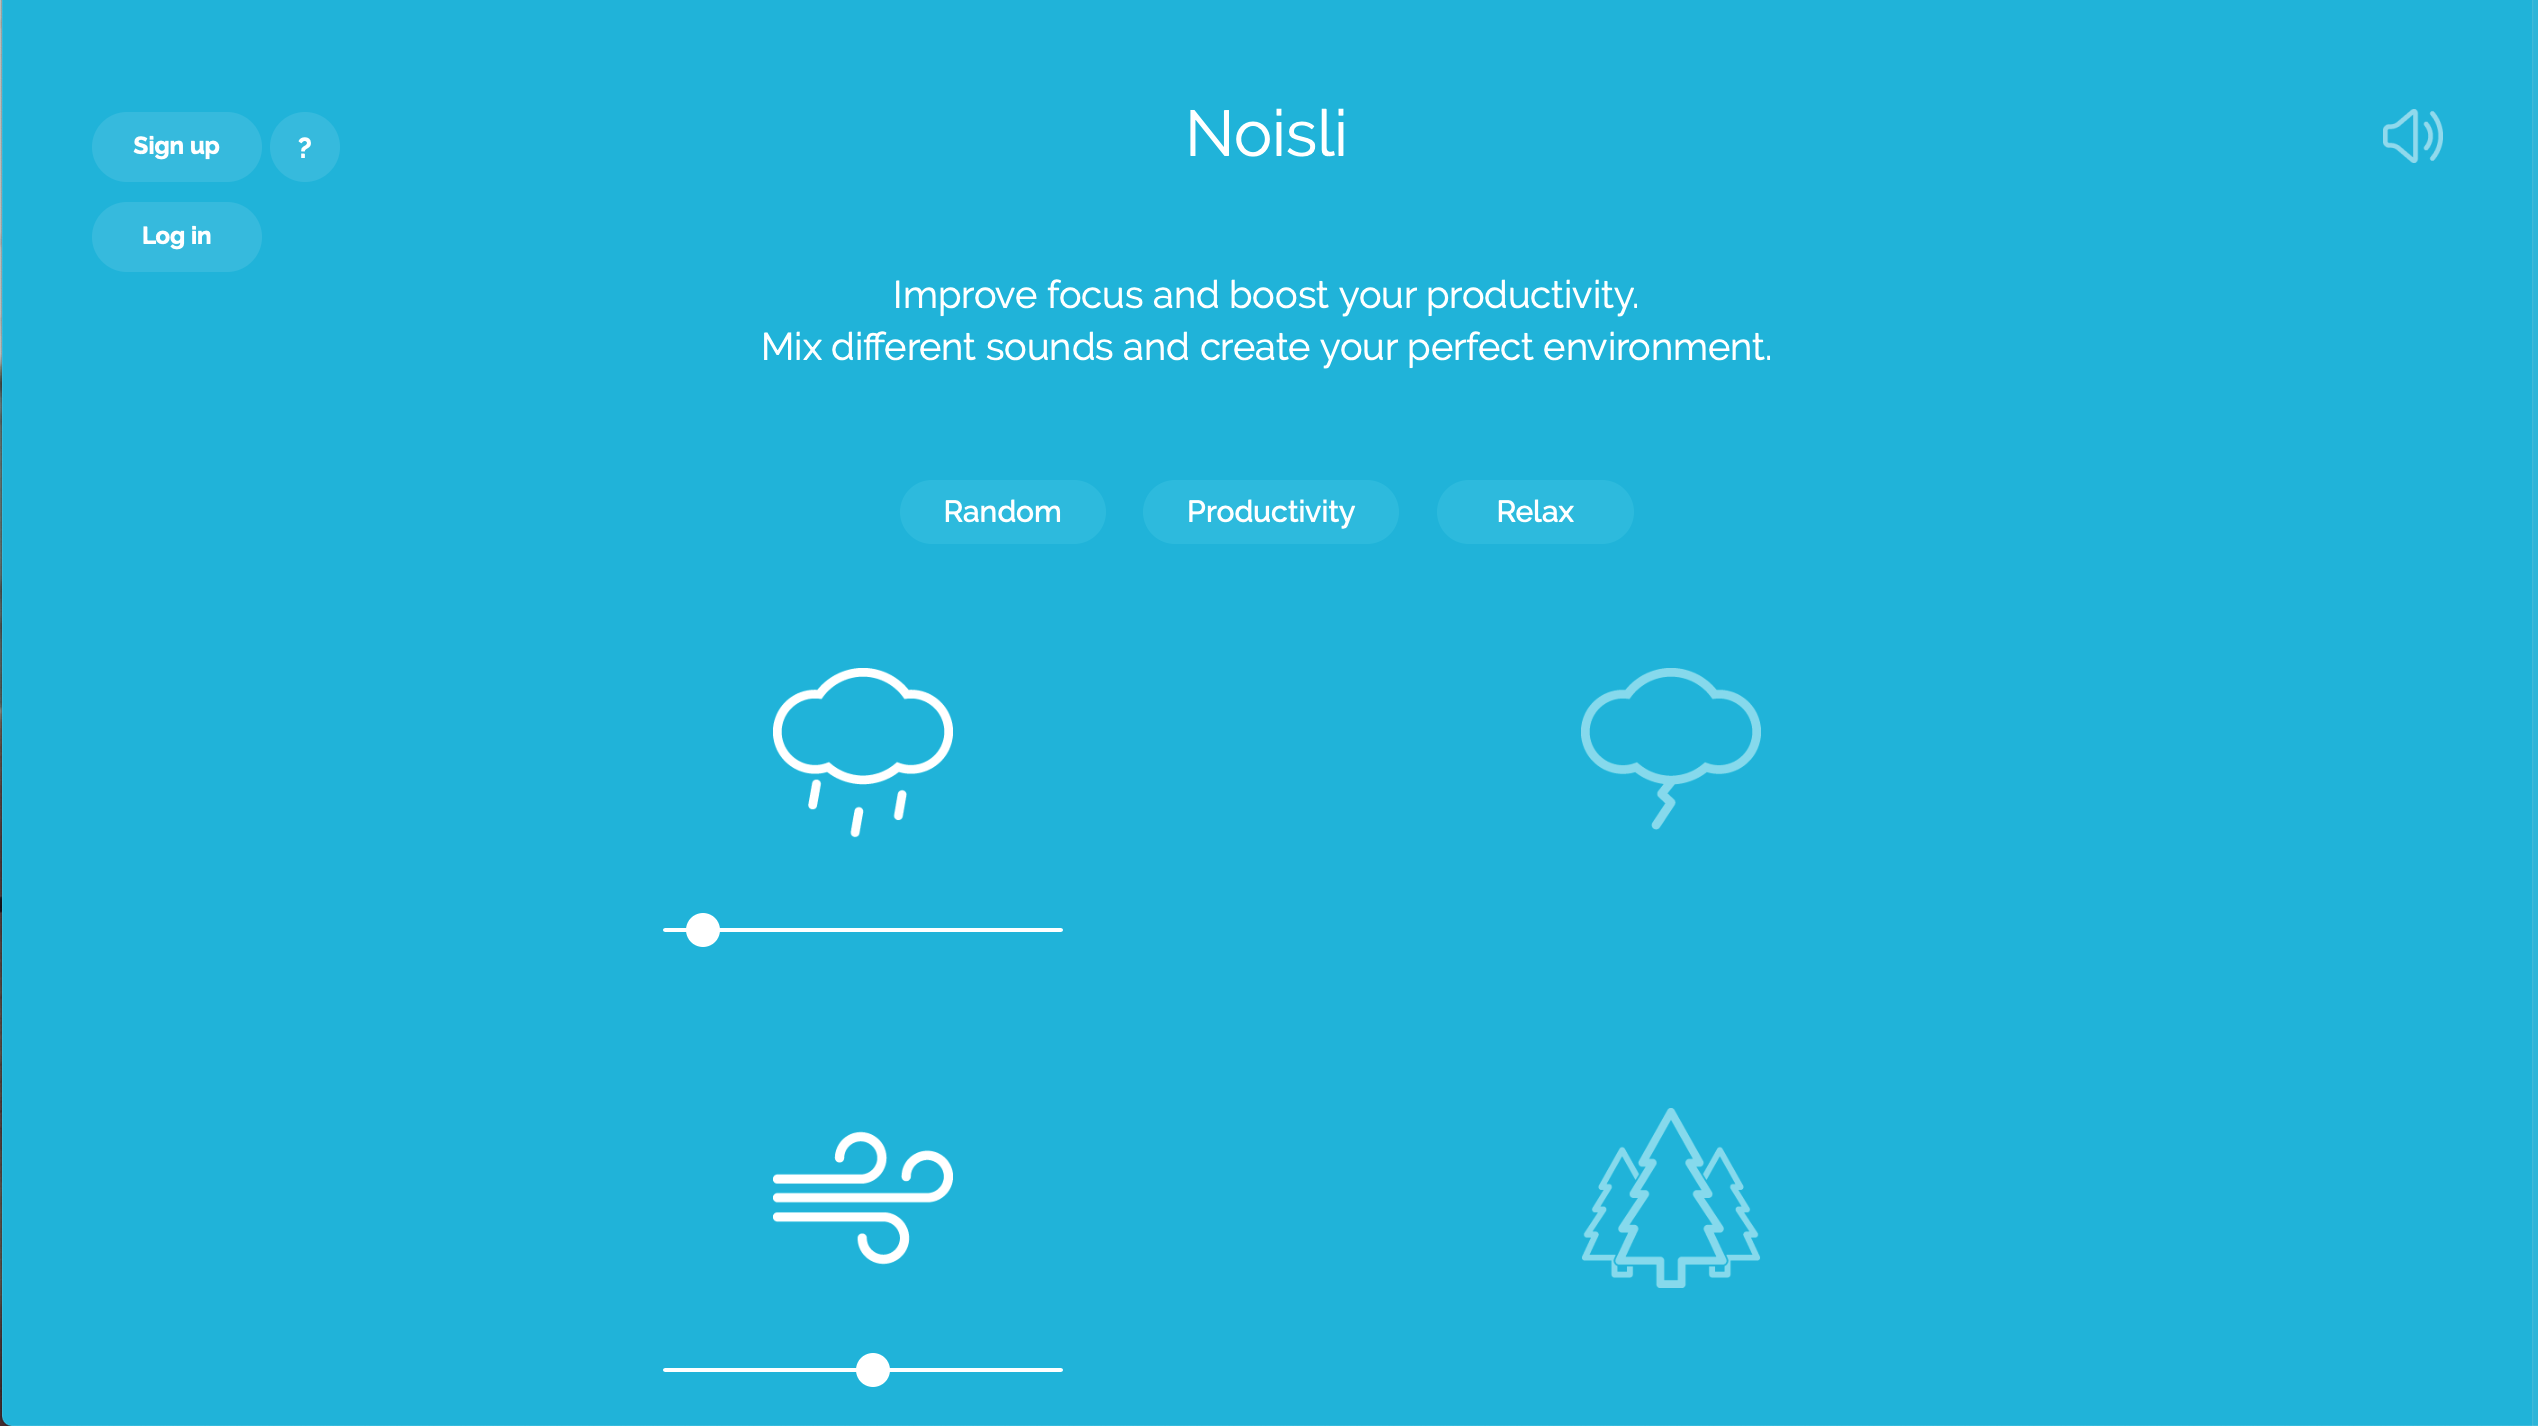 Noisli offers custom background sounds to listen to while you work.